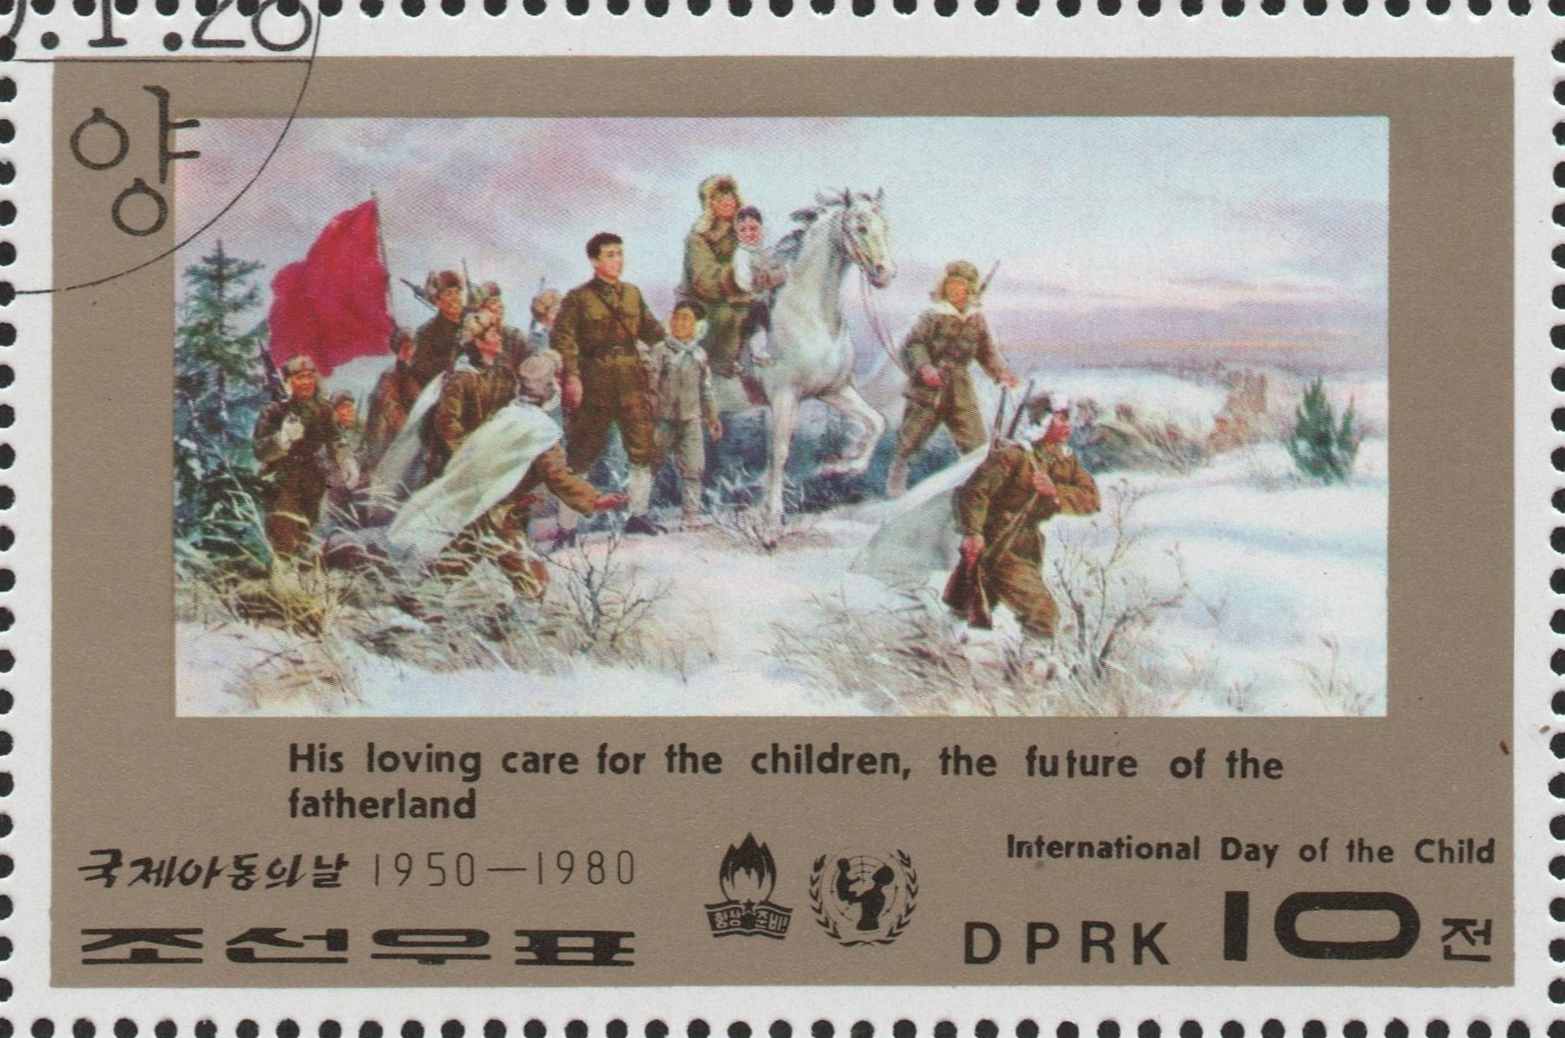 Democratic People's Republic of Korea - Scott #1906 (1980) stamp digitally cropped from miniature sheet